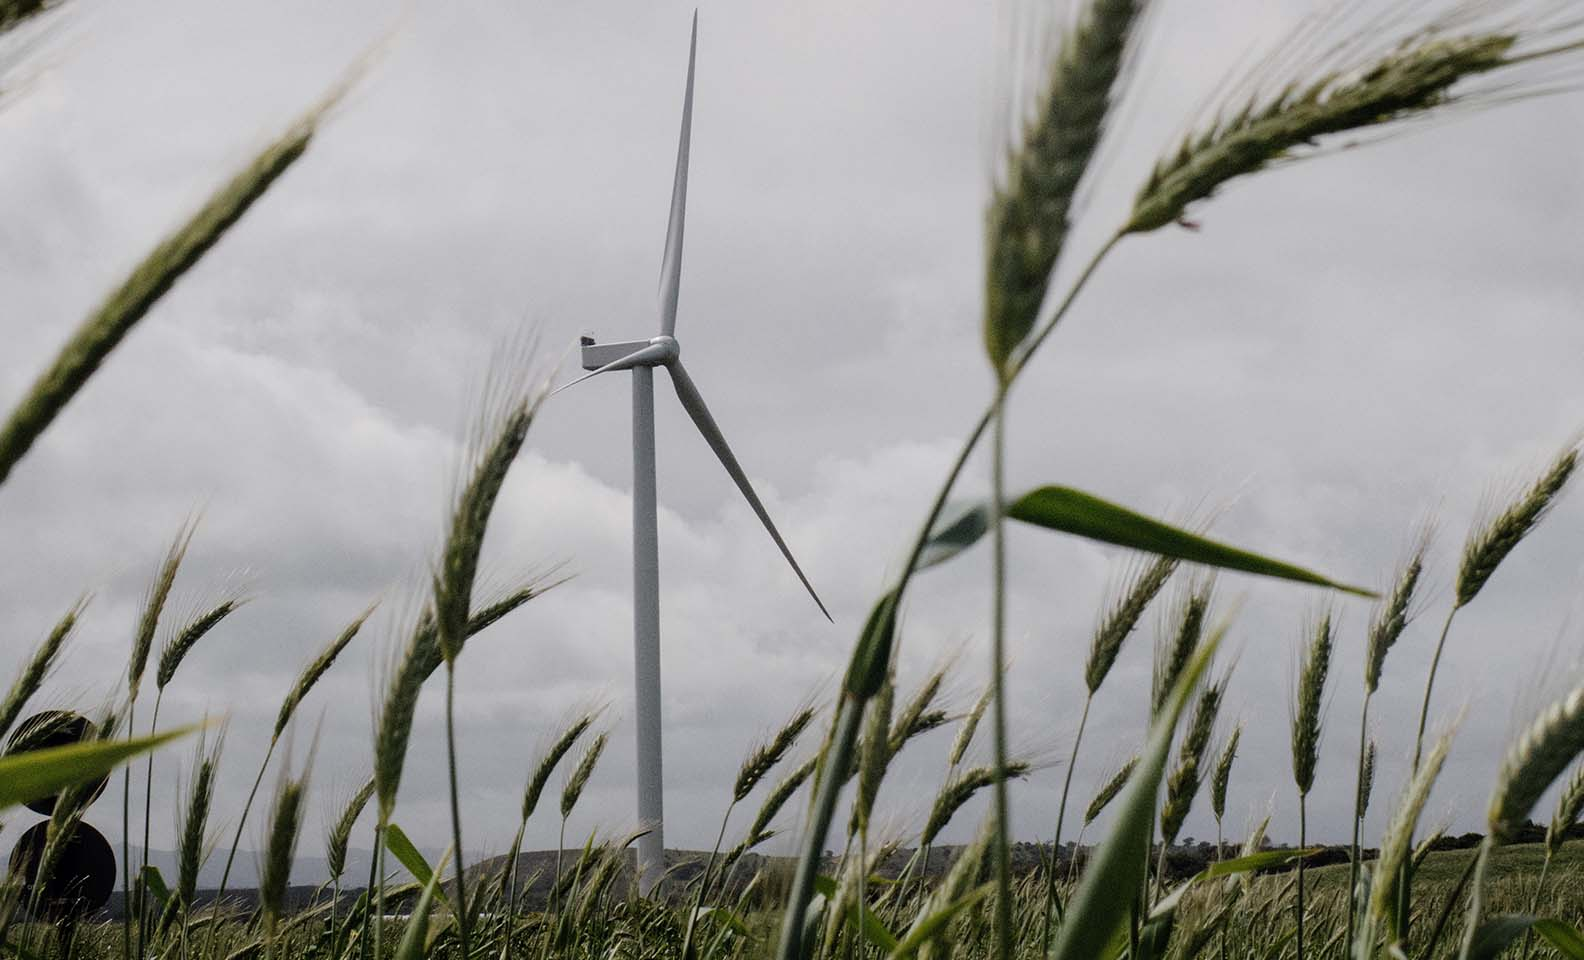 View on a wind turbine in a field